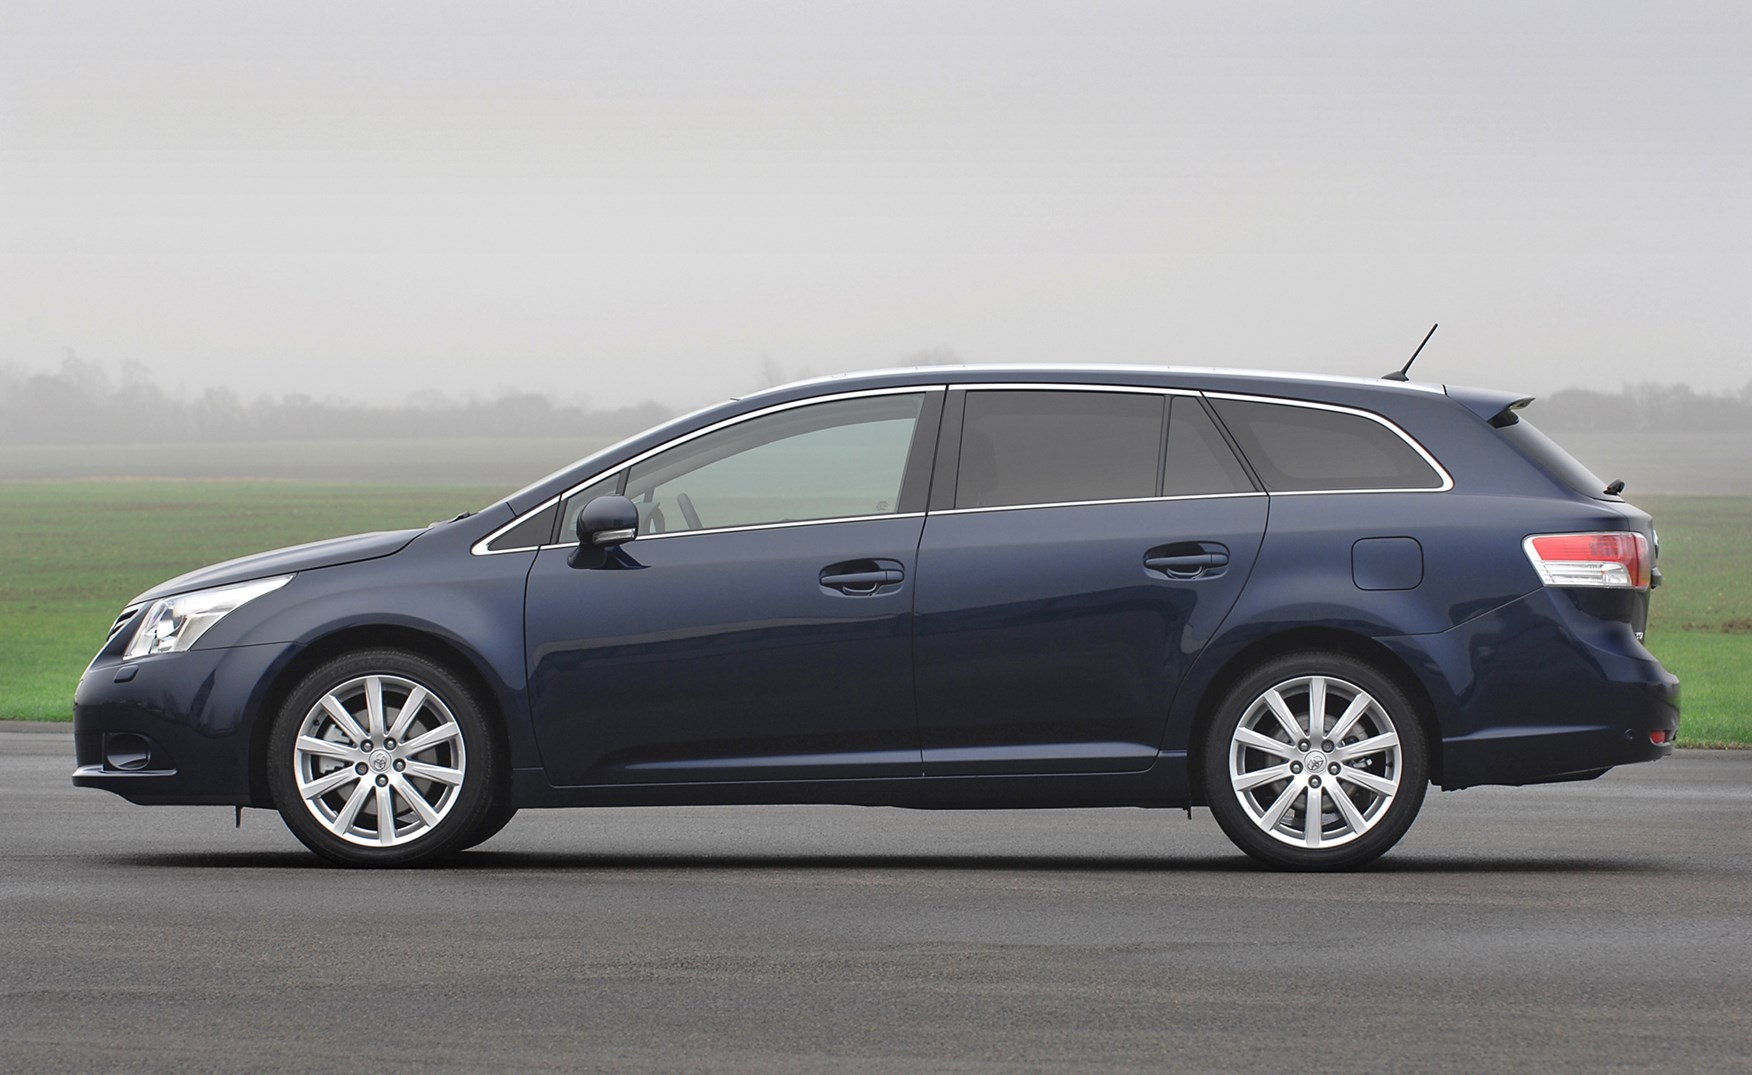 toyota avensis tourer review toyota uk news reviews autos post. Black Bedroom Furniture Sets. Home Design Ideas